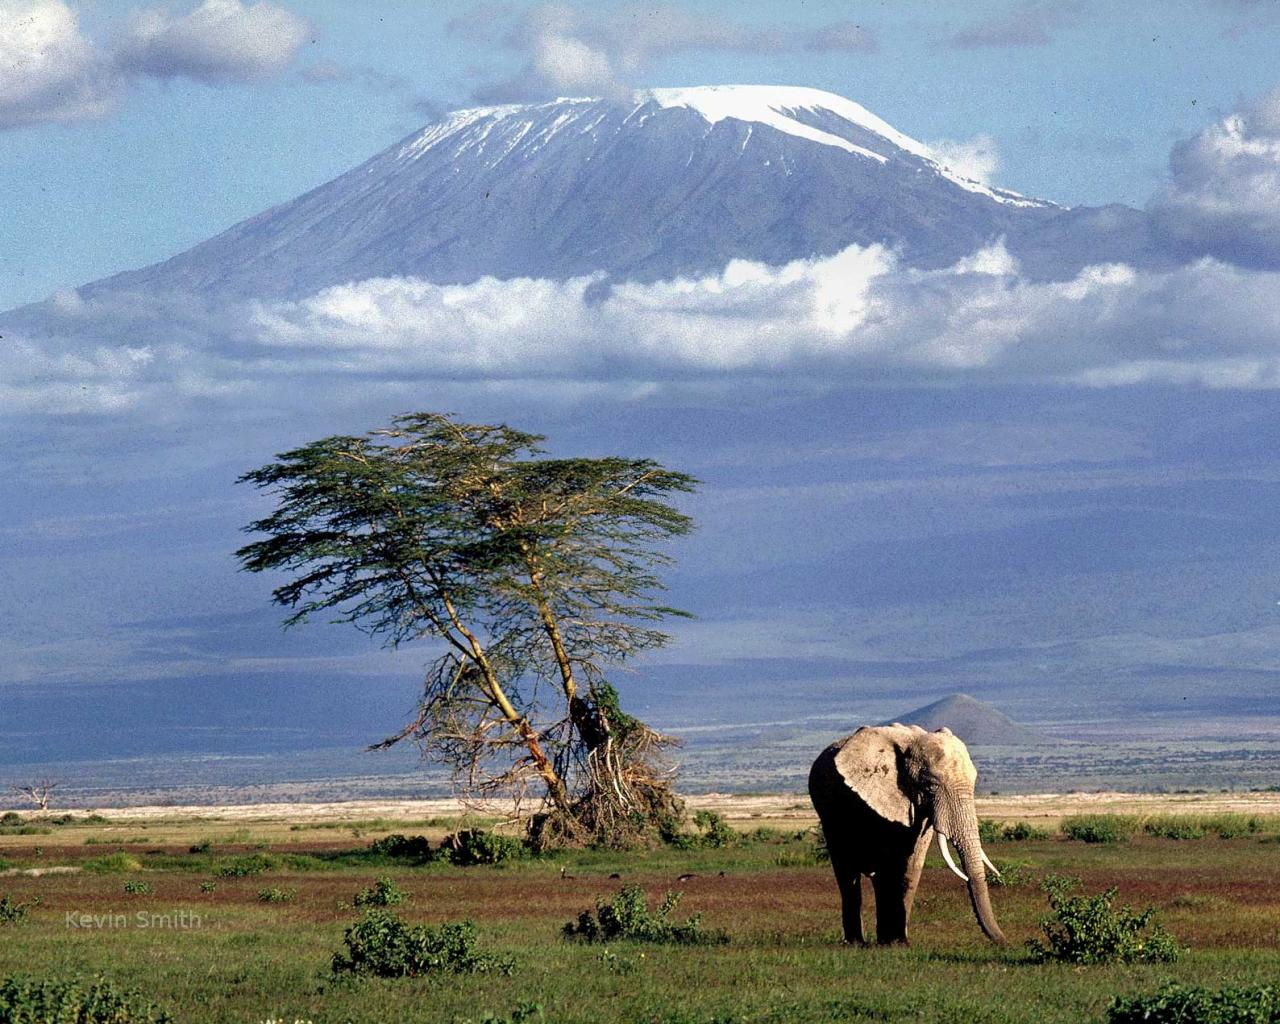 snows of kilimanjaro Ernest hemingway opens his 1936 short story the snows of kilimanjaro by  mentioning a leopard carcass up near the summit of mount.